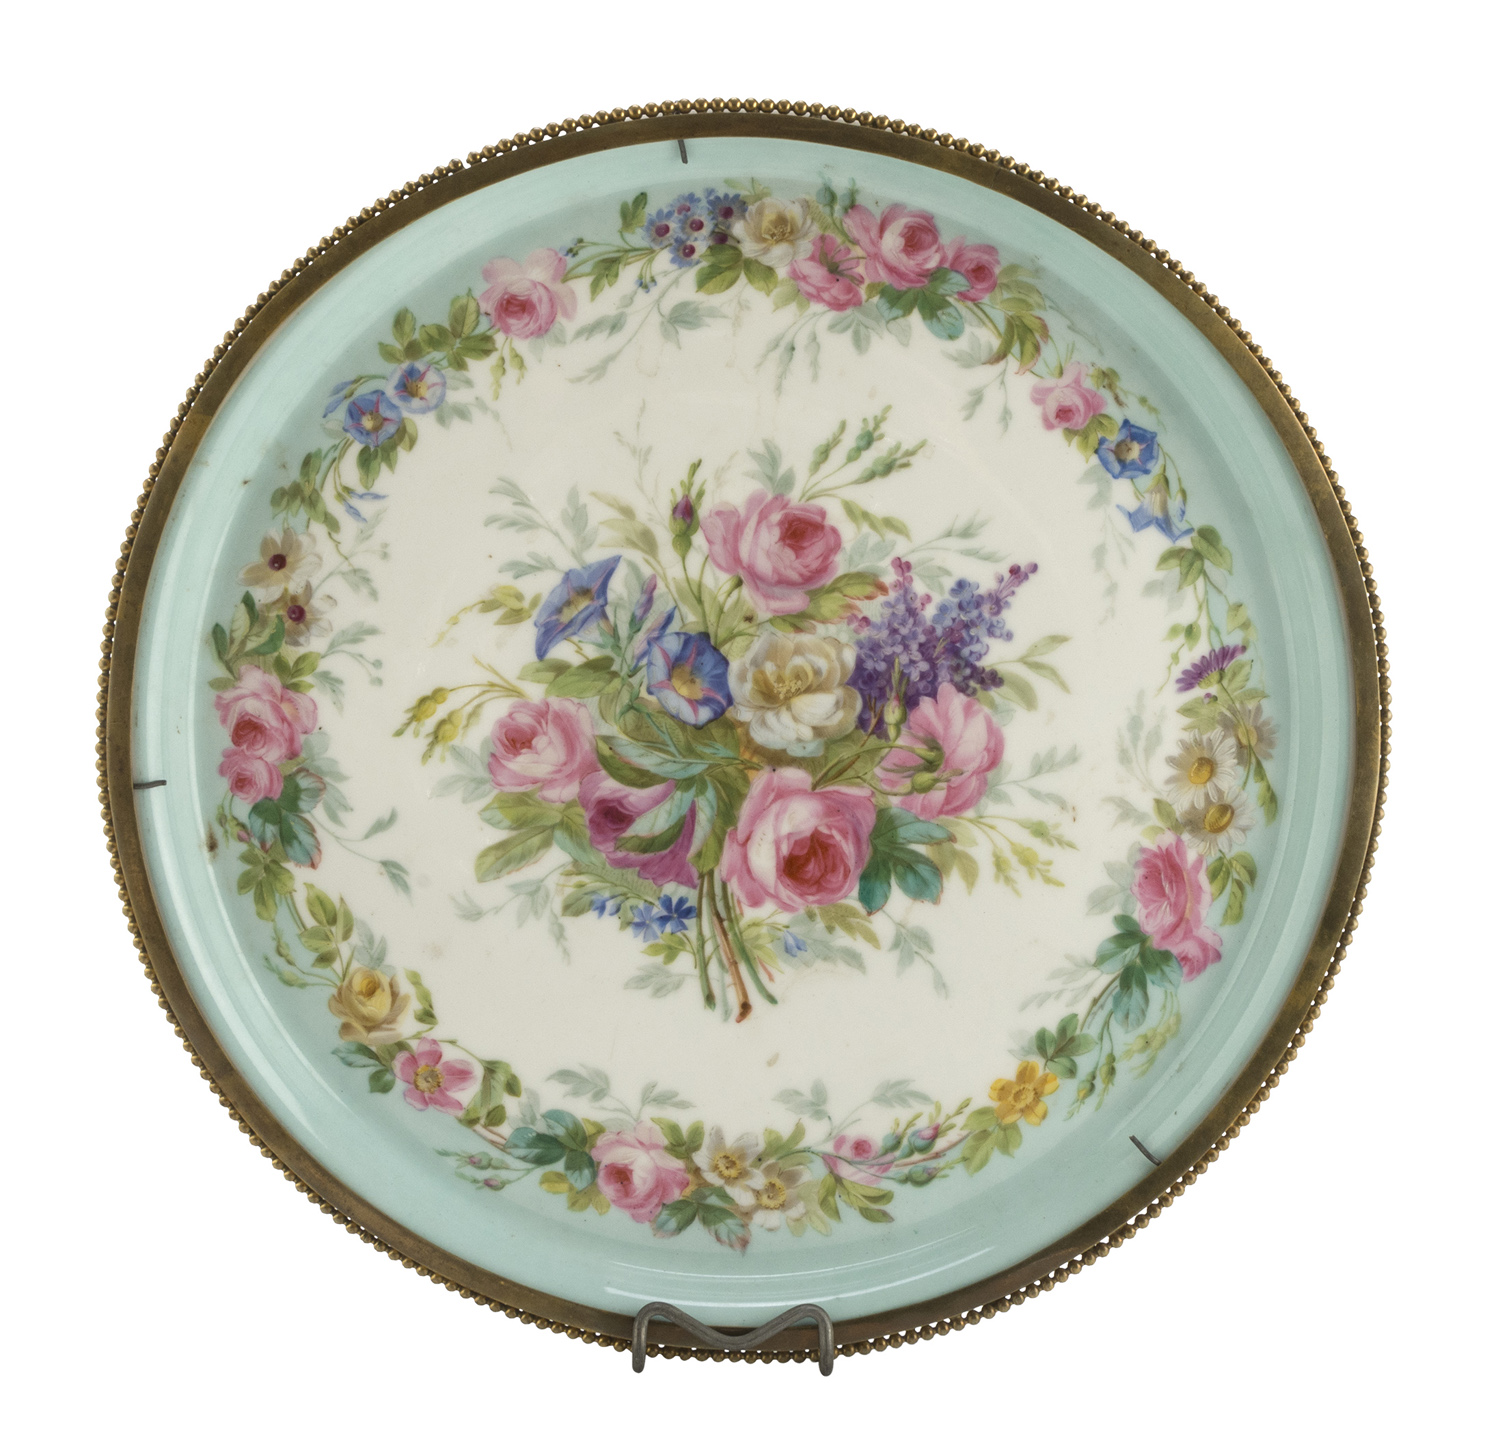 PORCELAIN TRAY LATE 19th CENTURY